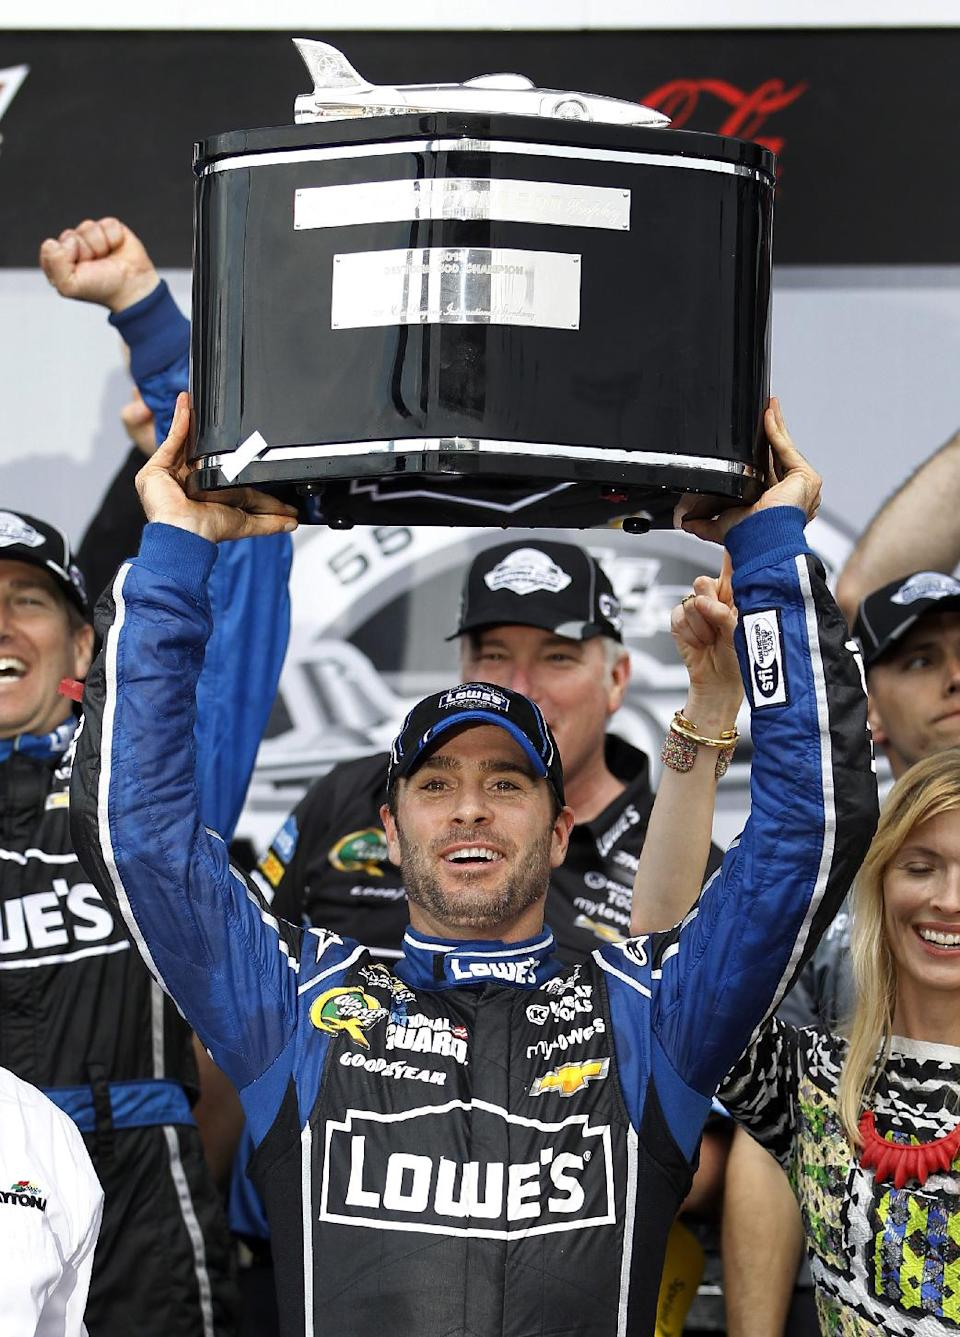 Jimmie Johnson holds up his trophy next to his wife Chandra, right, after winning the Daytona 500 NASCAR Sprint Cup Series auto race, Sunday, Feb. 24, 2013, at Daytona International Speedway in Daytona Beach, Fla. (AP Photo/Terry Renna)